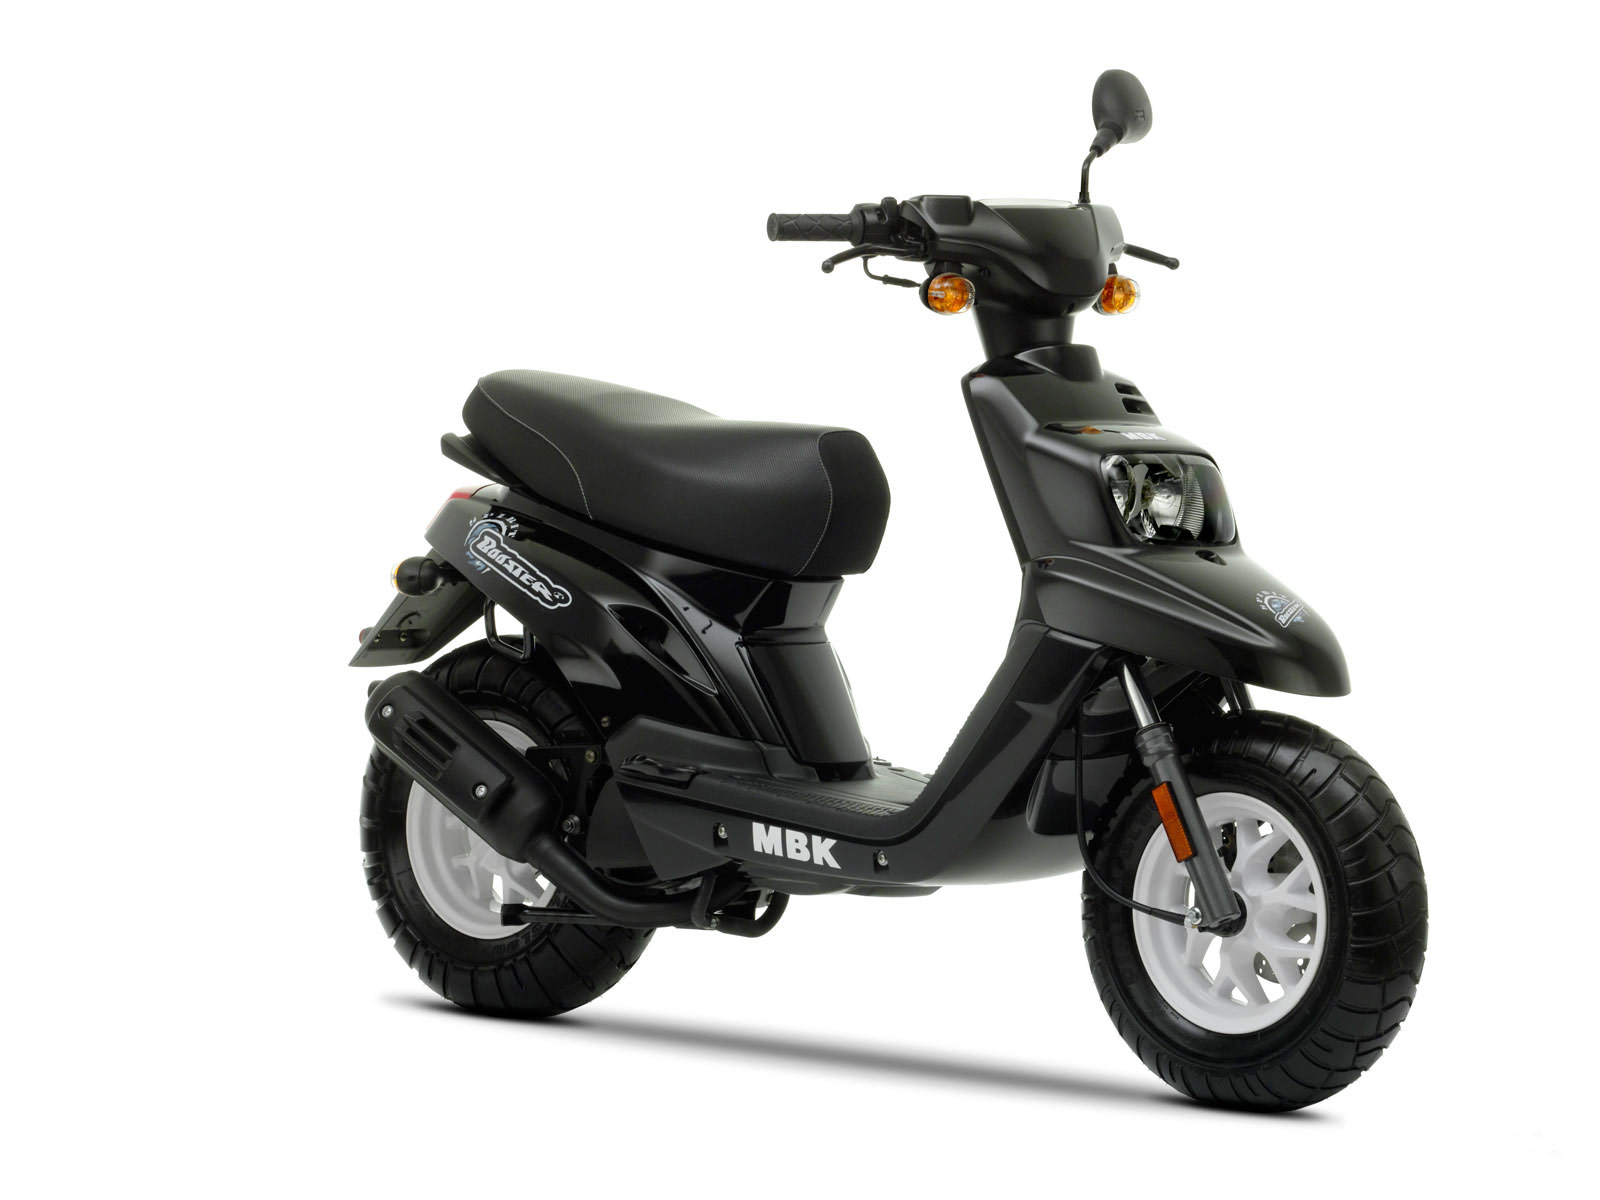 2009 mbk booster scooter pictures specifications. Black Bedroom Furniture Sets. Home Design Ideas